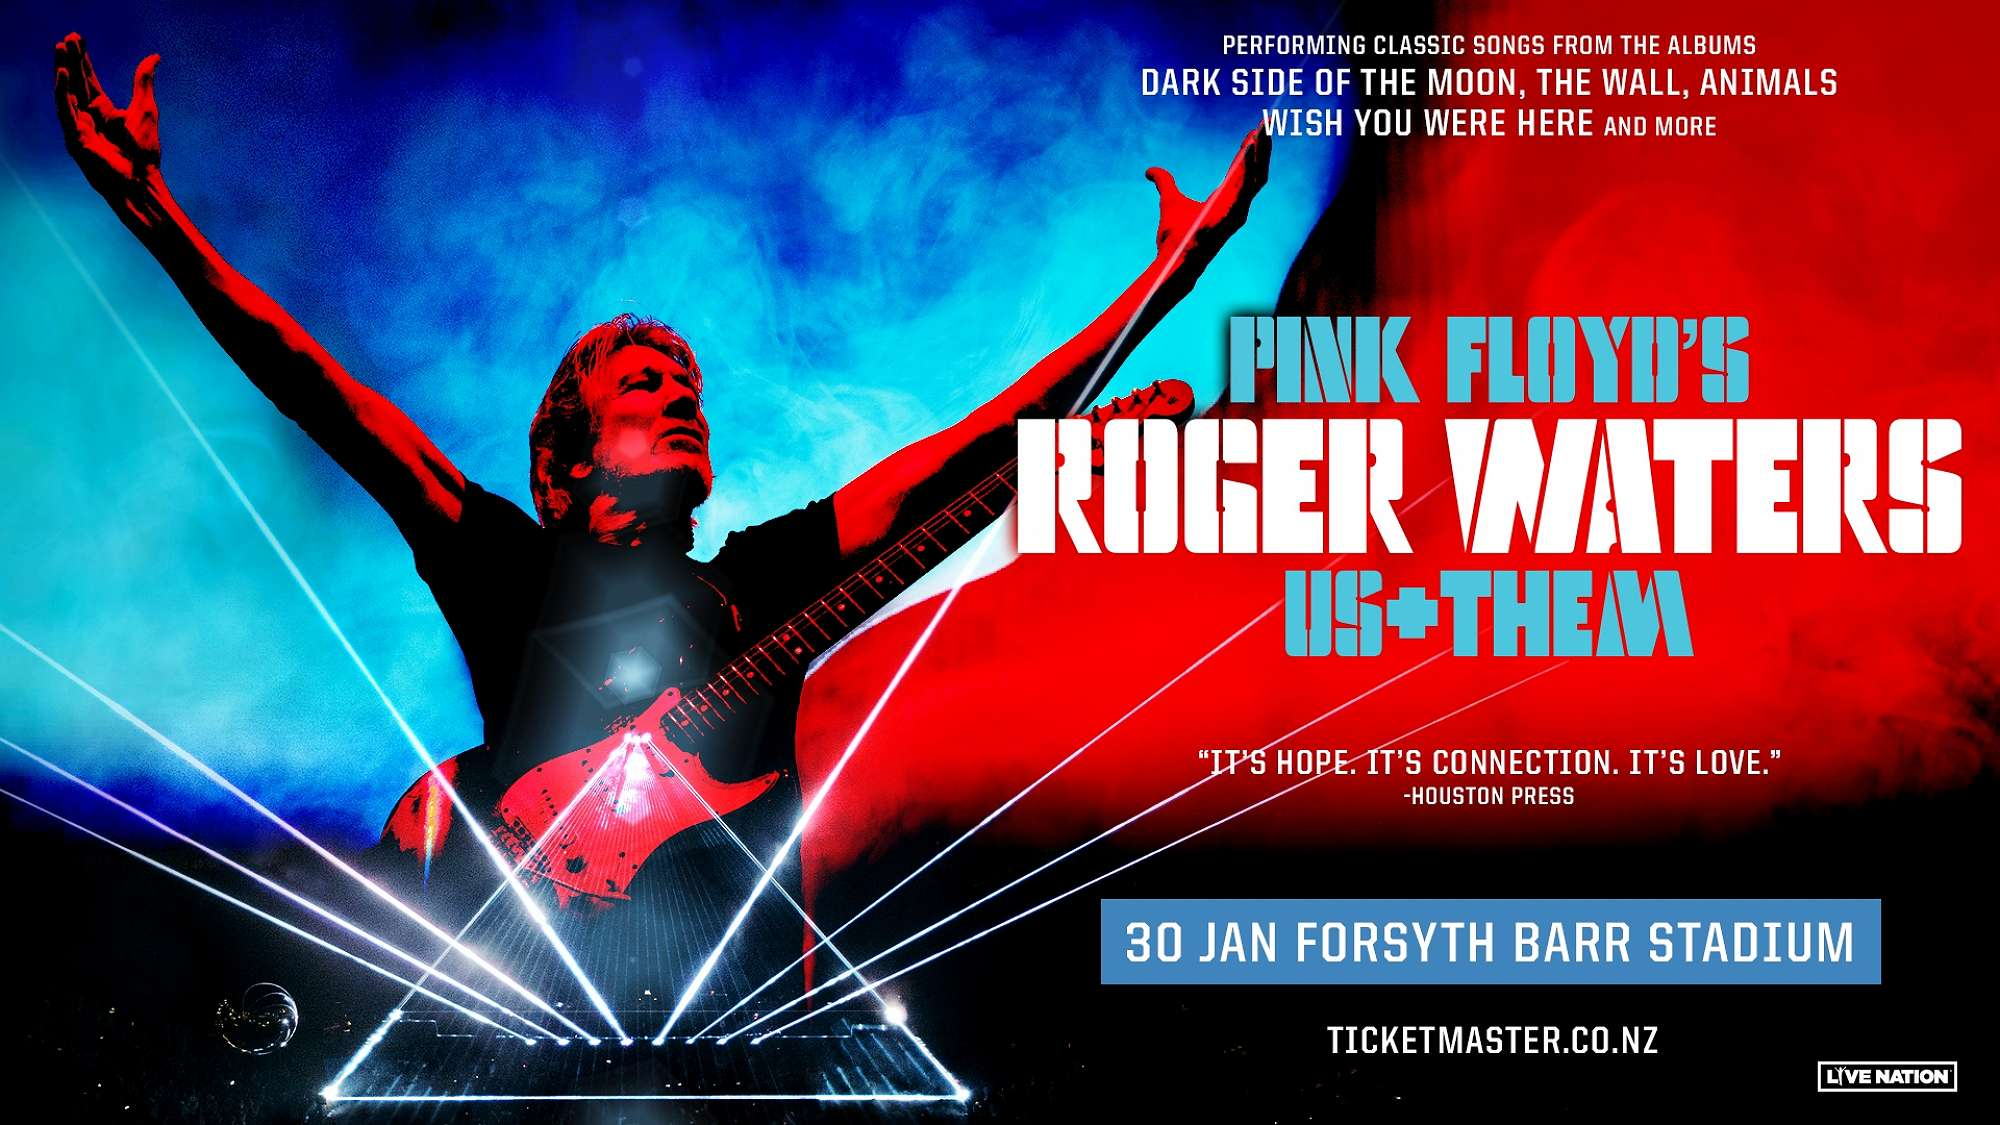 Roger Waters to play at Forsyth Barr Stadium!